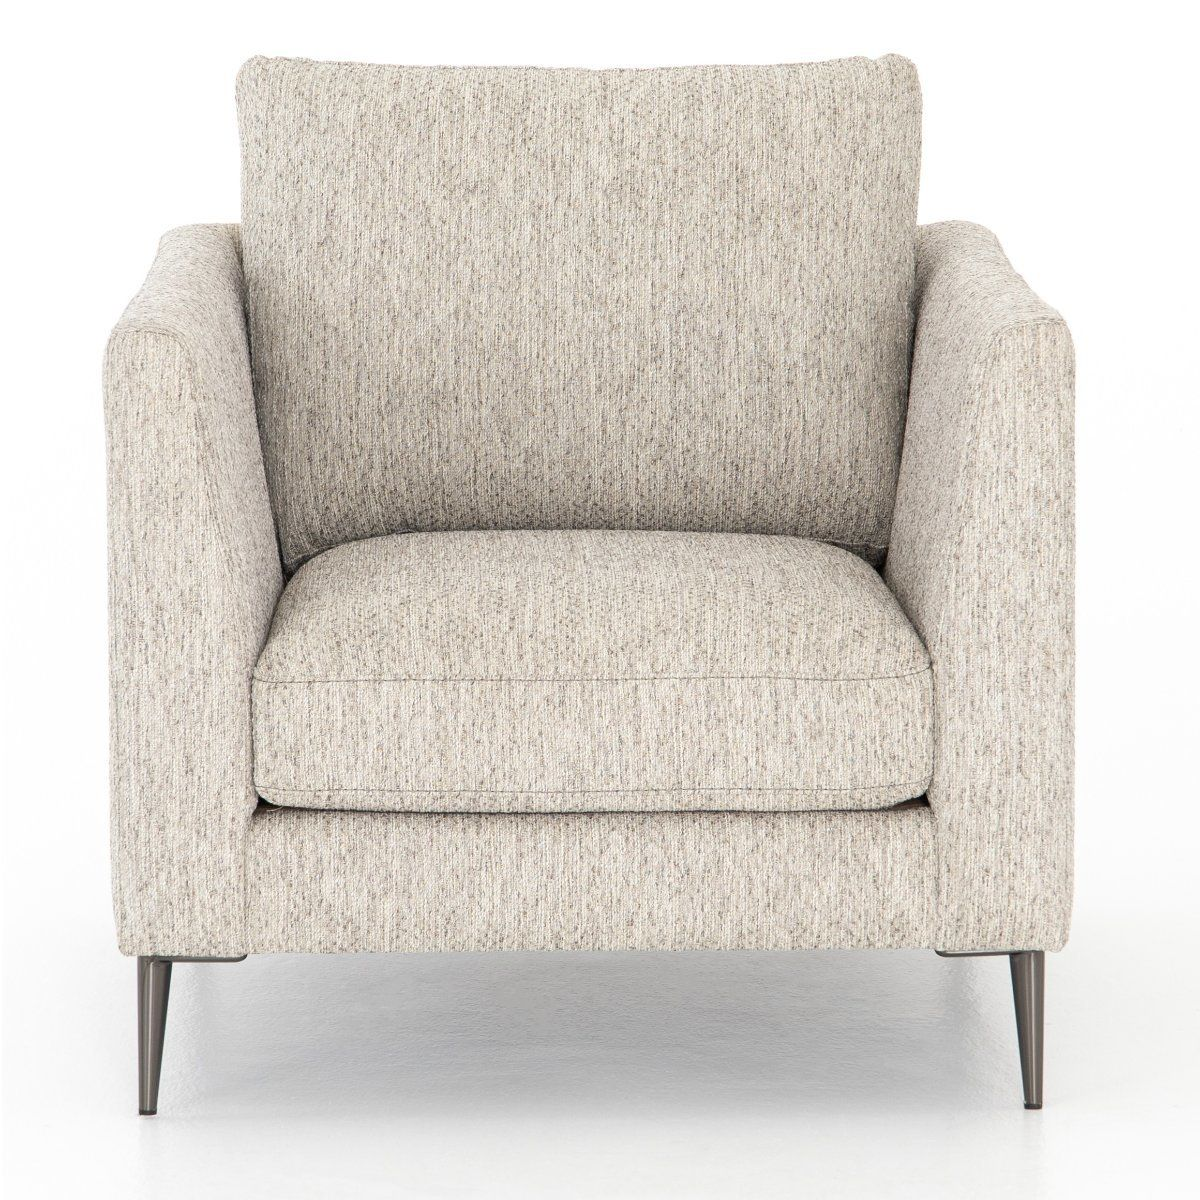 Kailor Modern Neutral Fabric Accent Chair Living Room Chairs